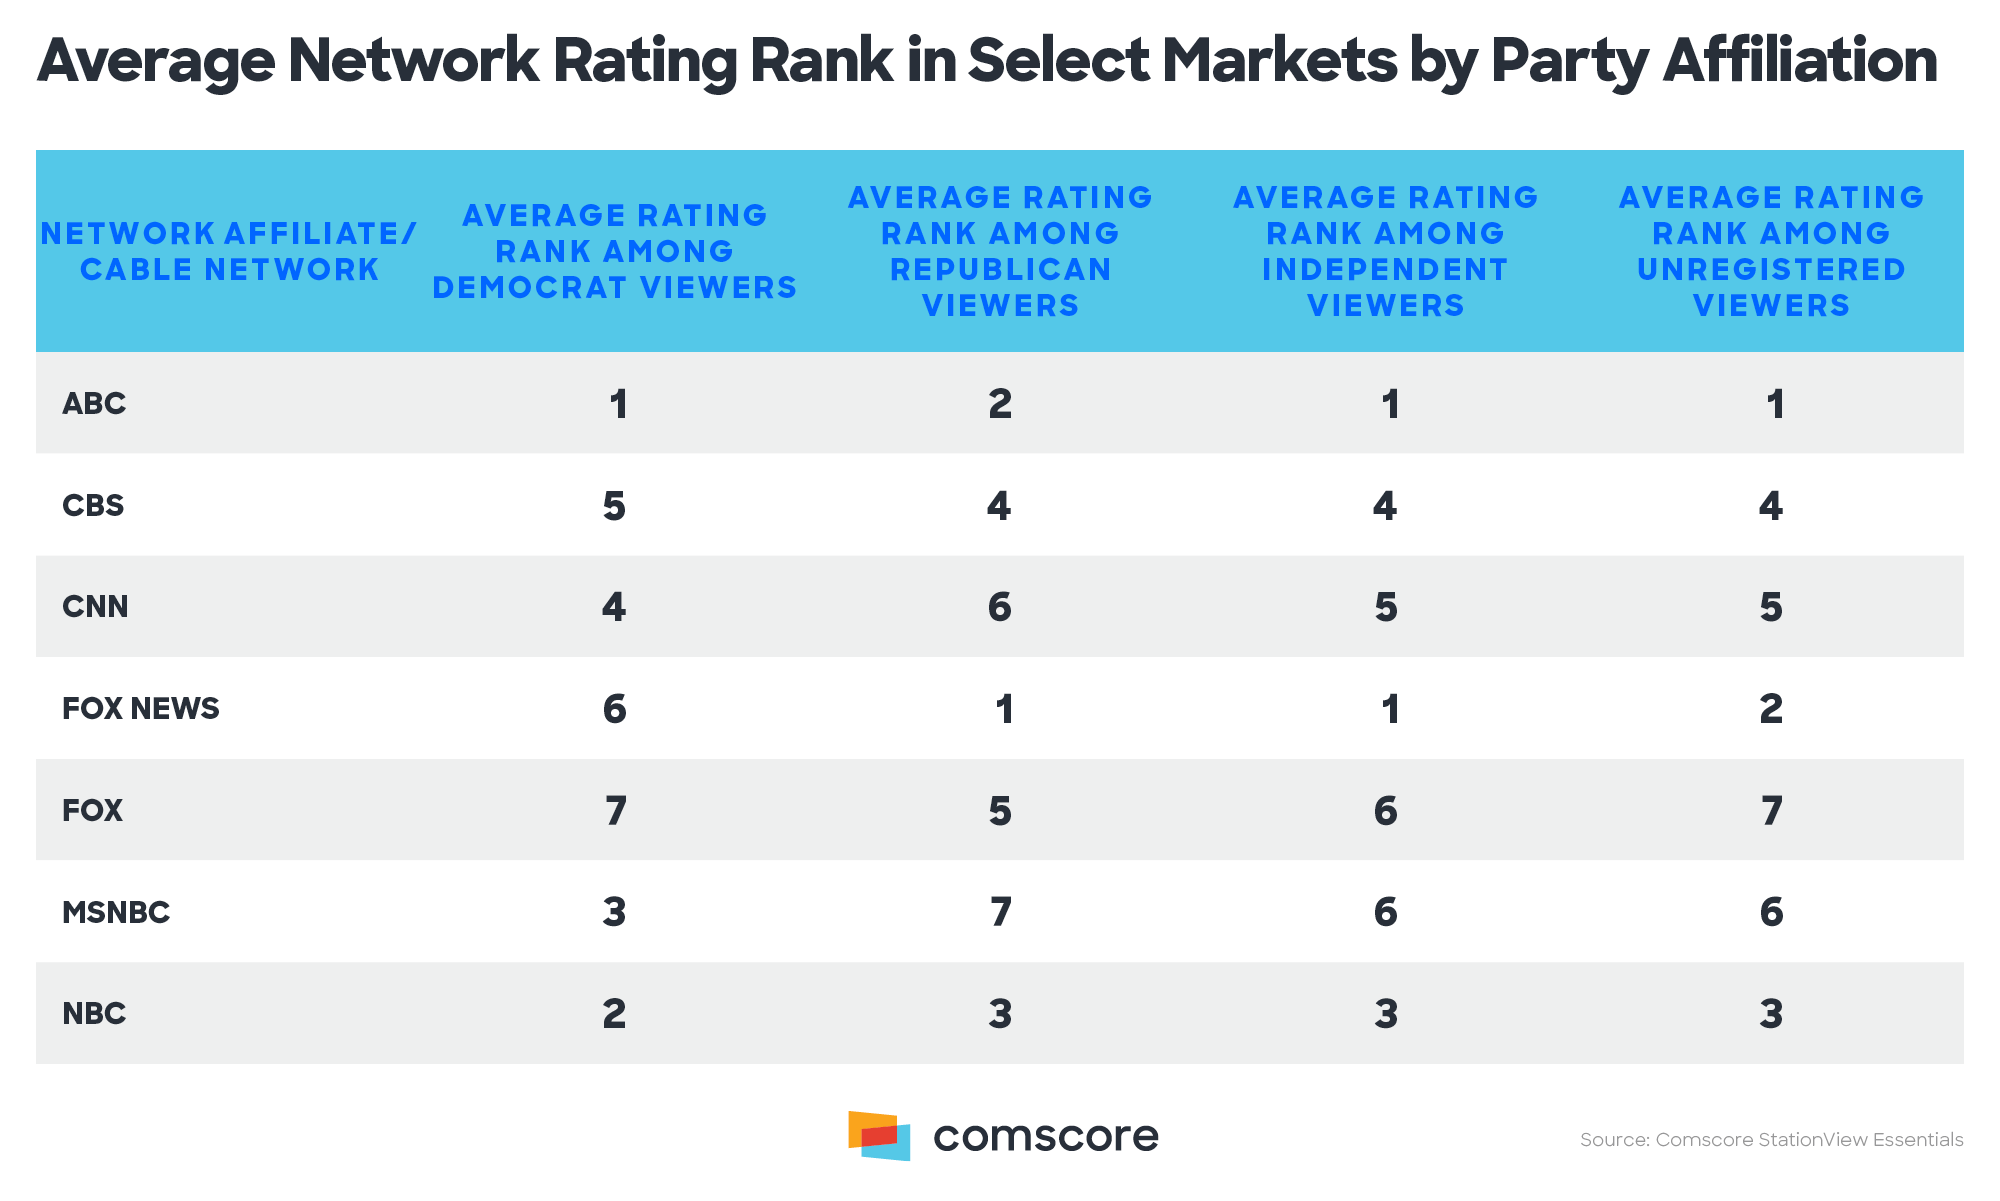 Average Network Rating Rank in Select Markets by Party Affiliation